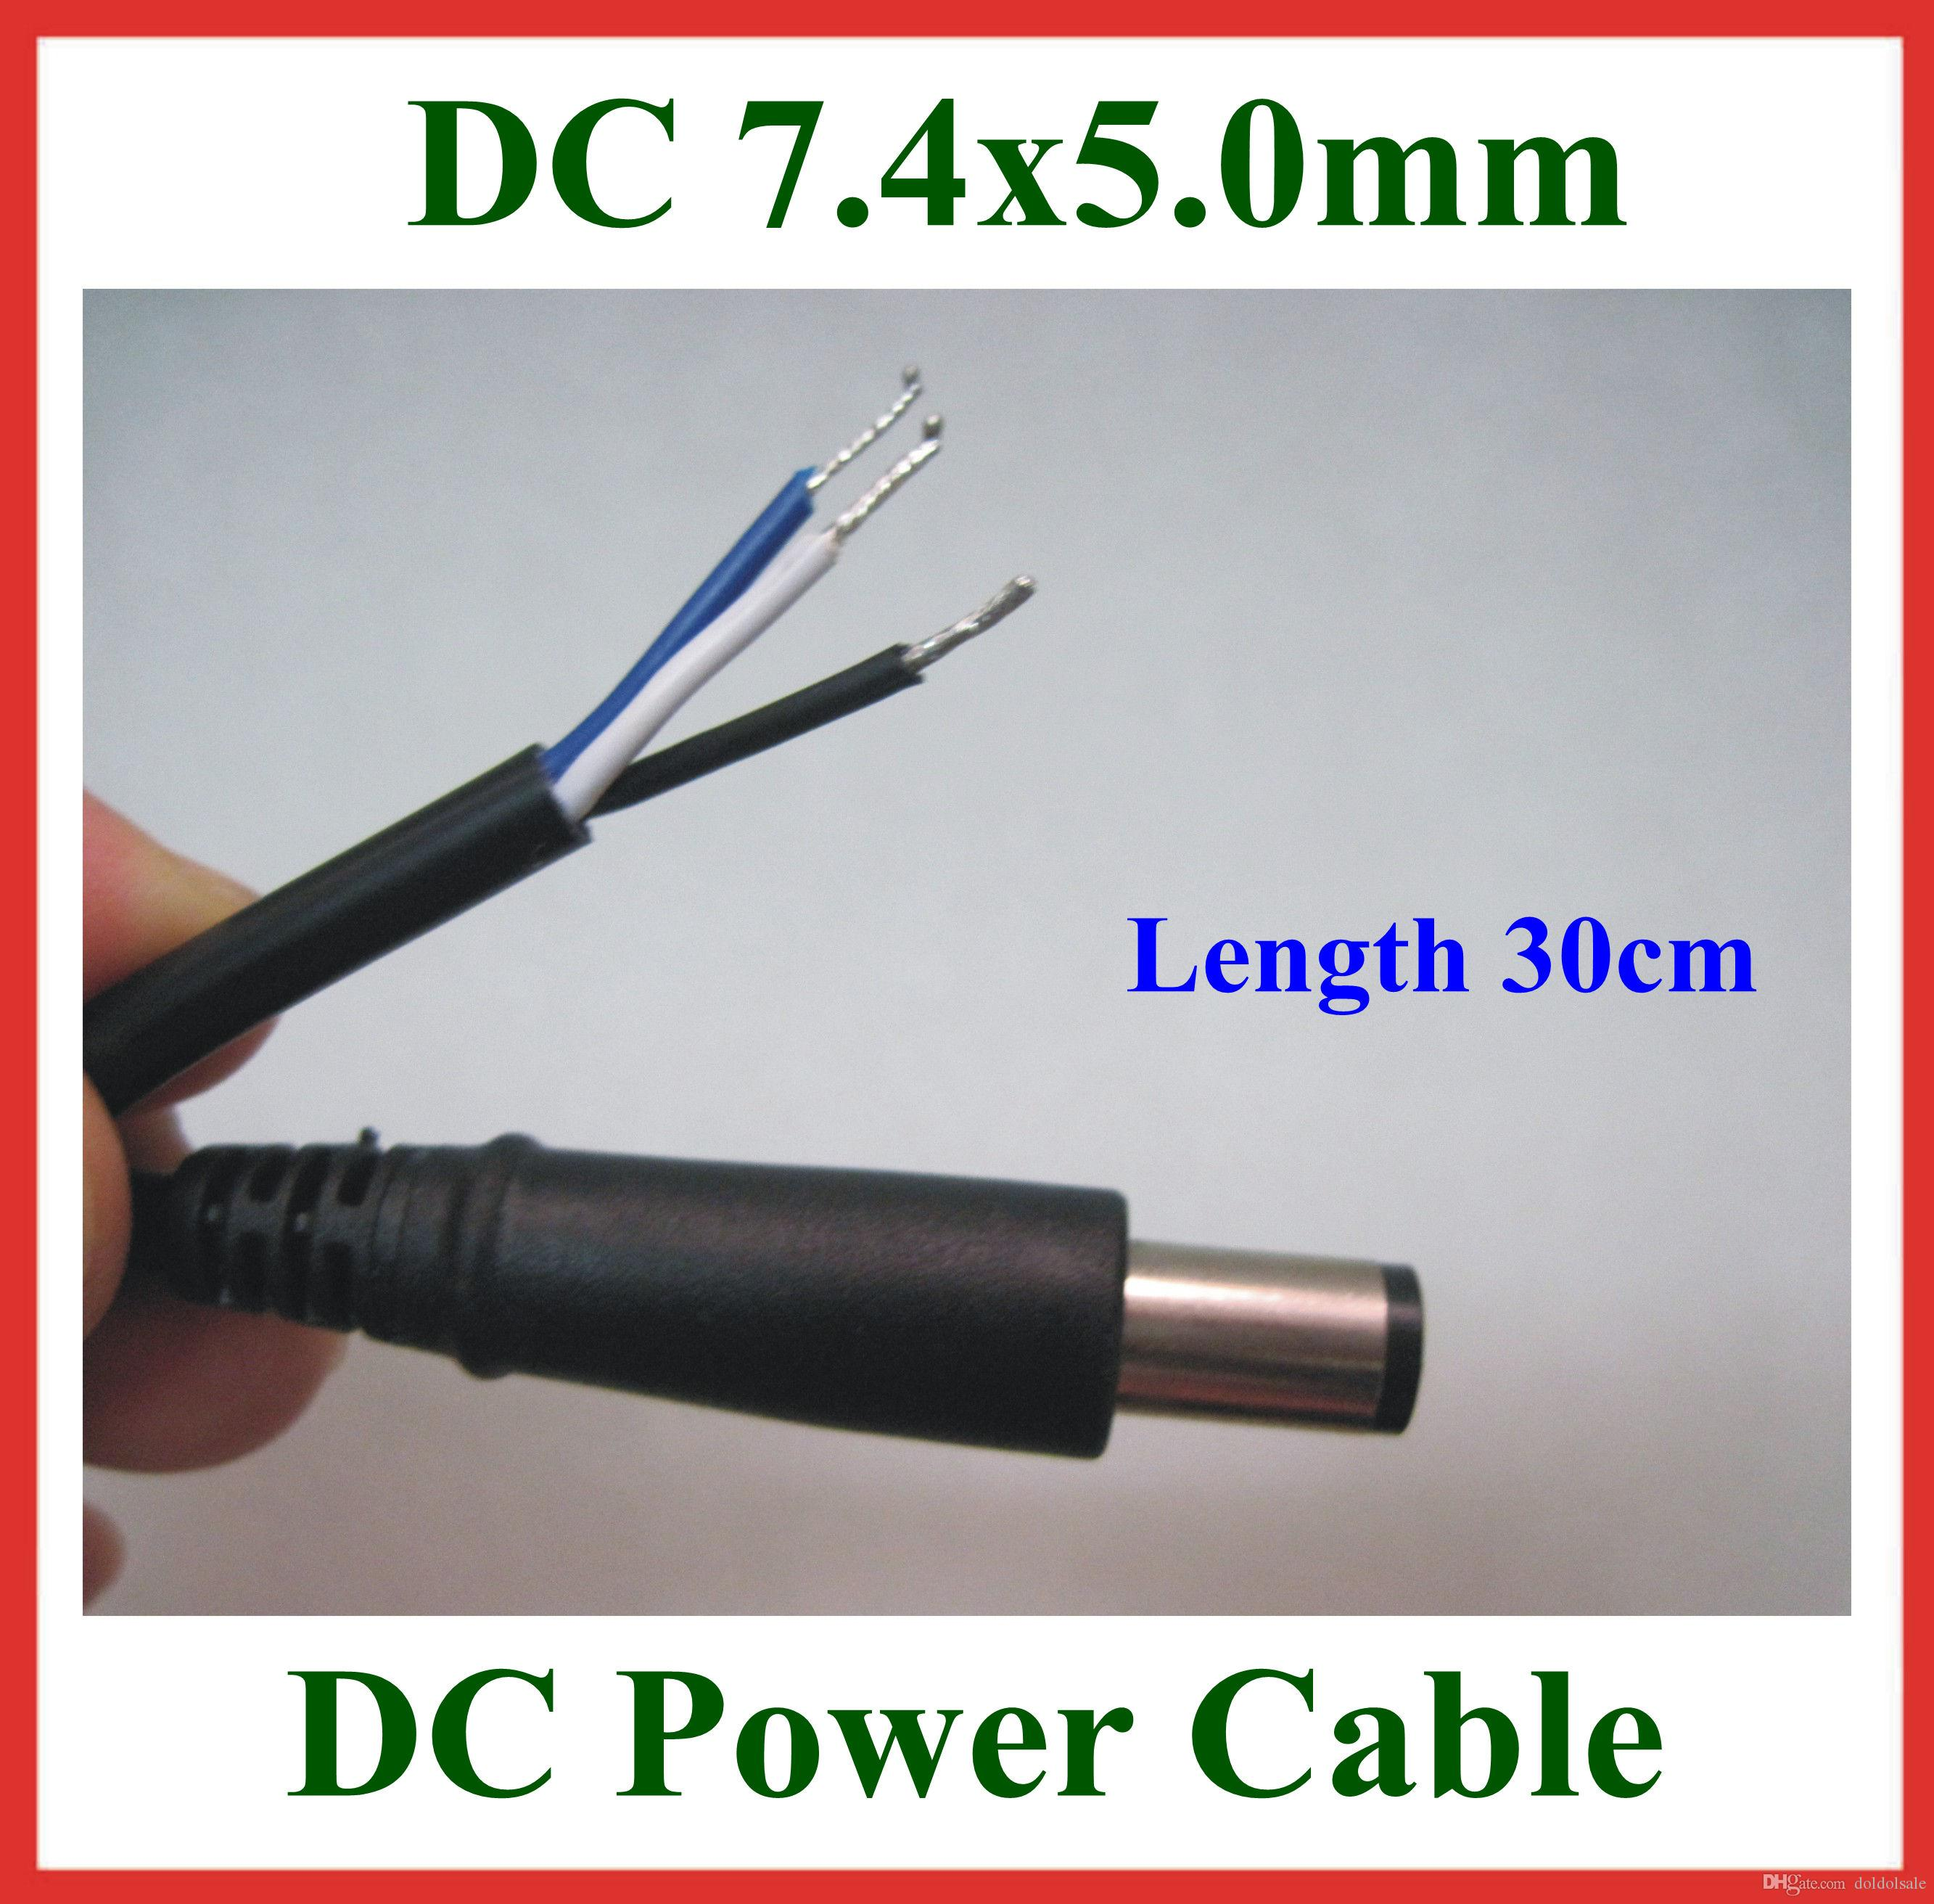 2pcs dc tip plug 7 4 5 0mm 7 4x5 0mm dc power dc tip plug 7 4*5 0mm 7 4x5 0mm dc power supply cable with pin wiring diagram for hp laptop charger at soozxer.org